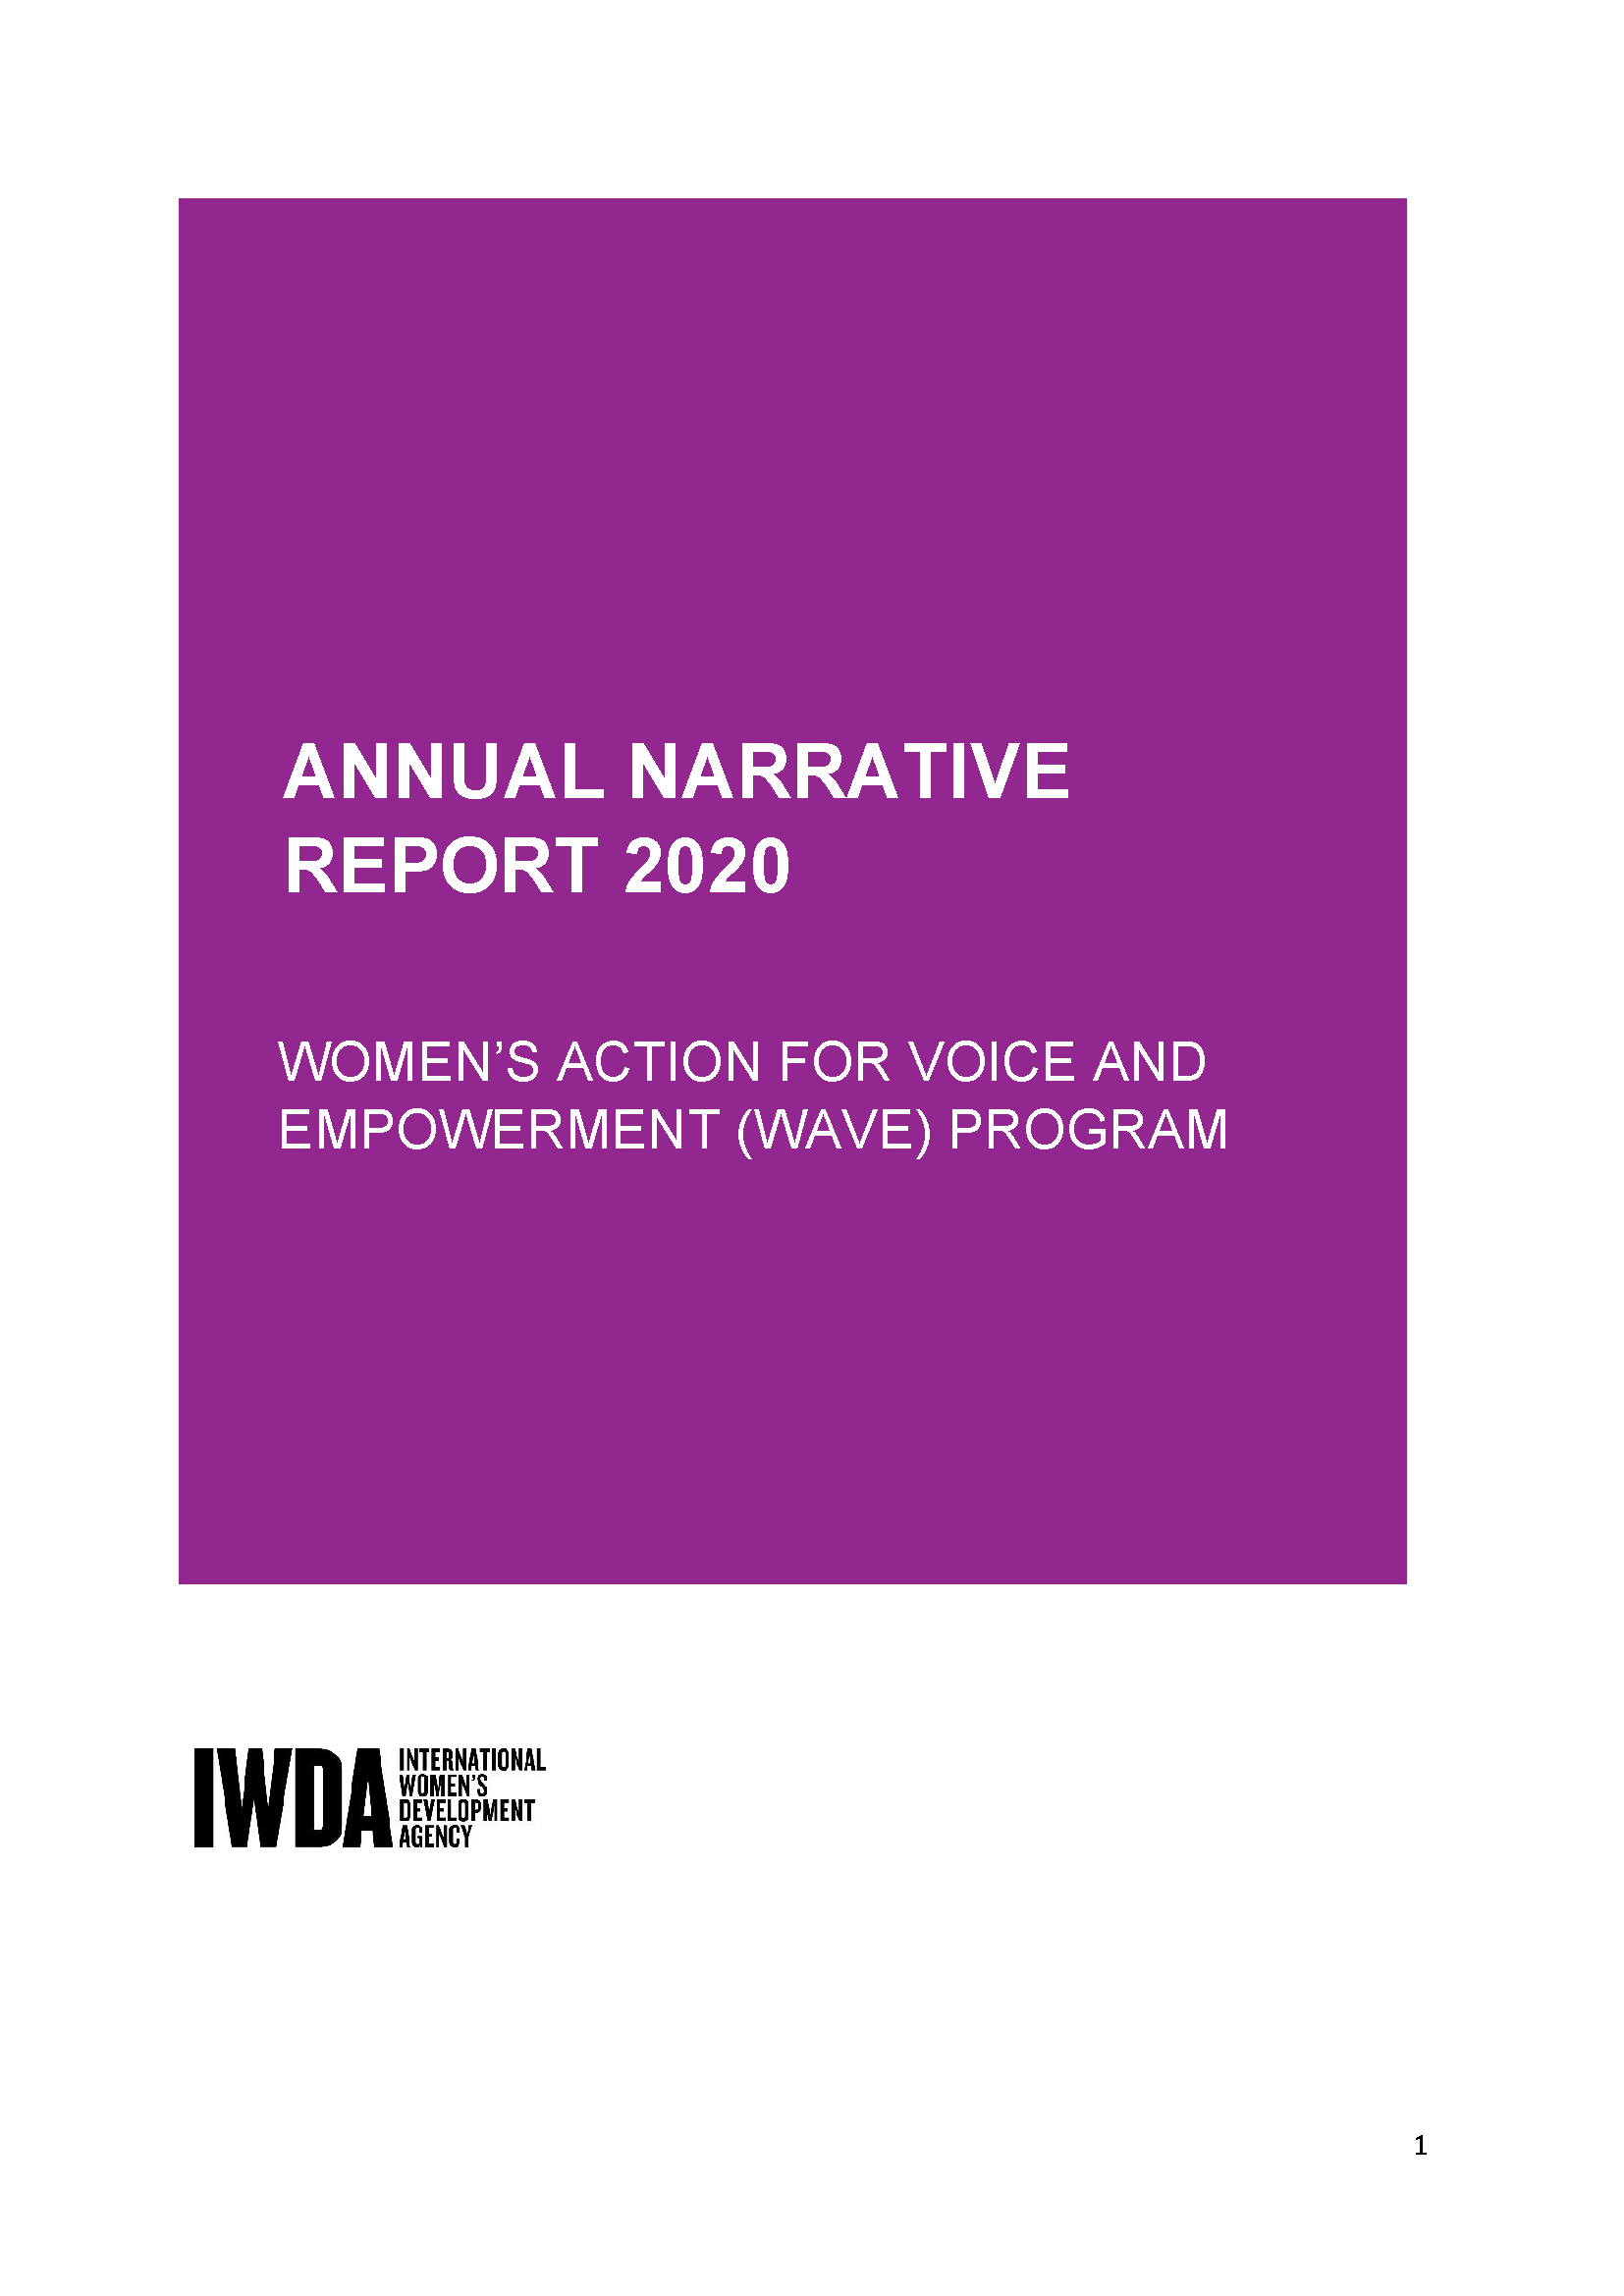 Purple background with white text heading that says 'Annual Narrative Report 2020'